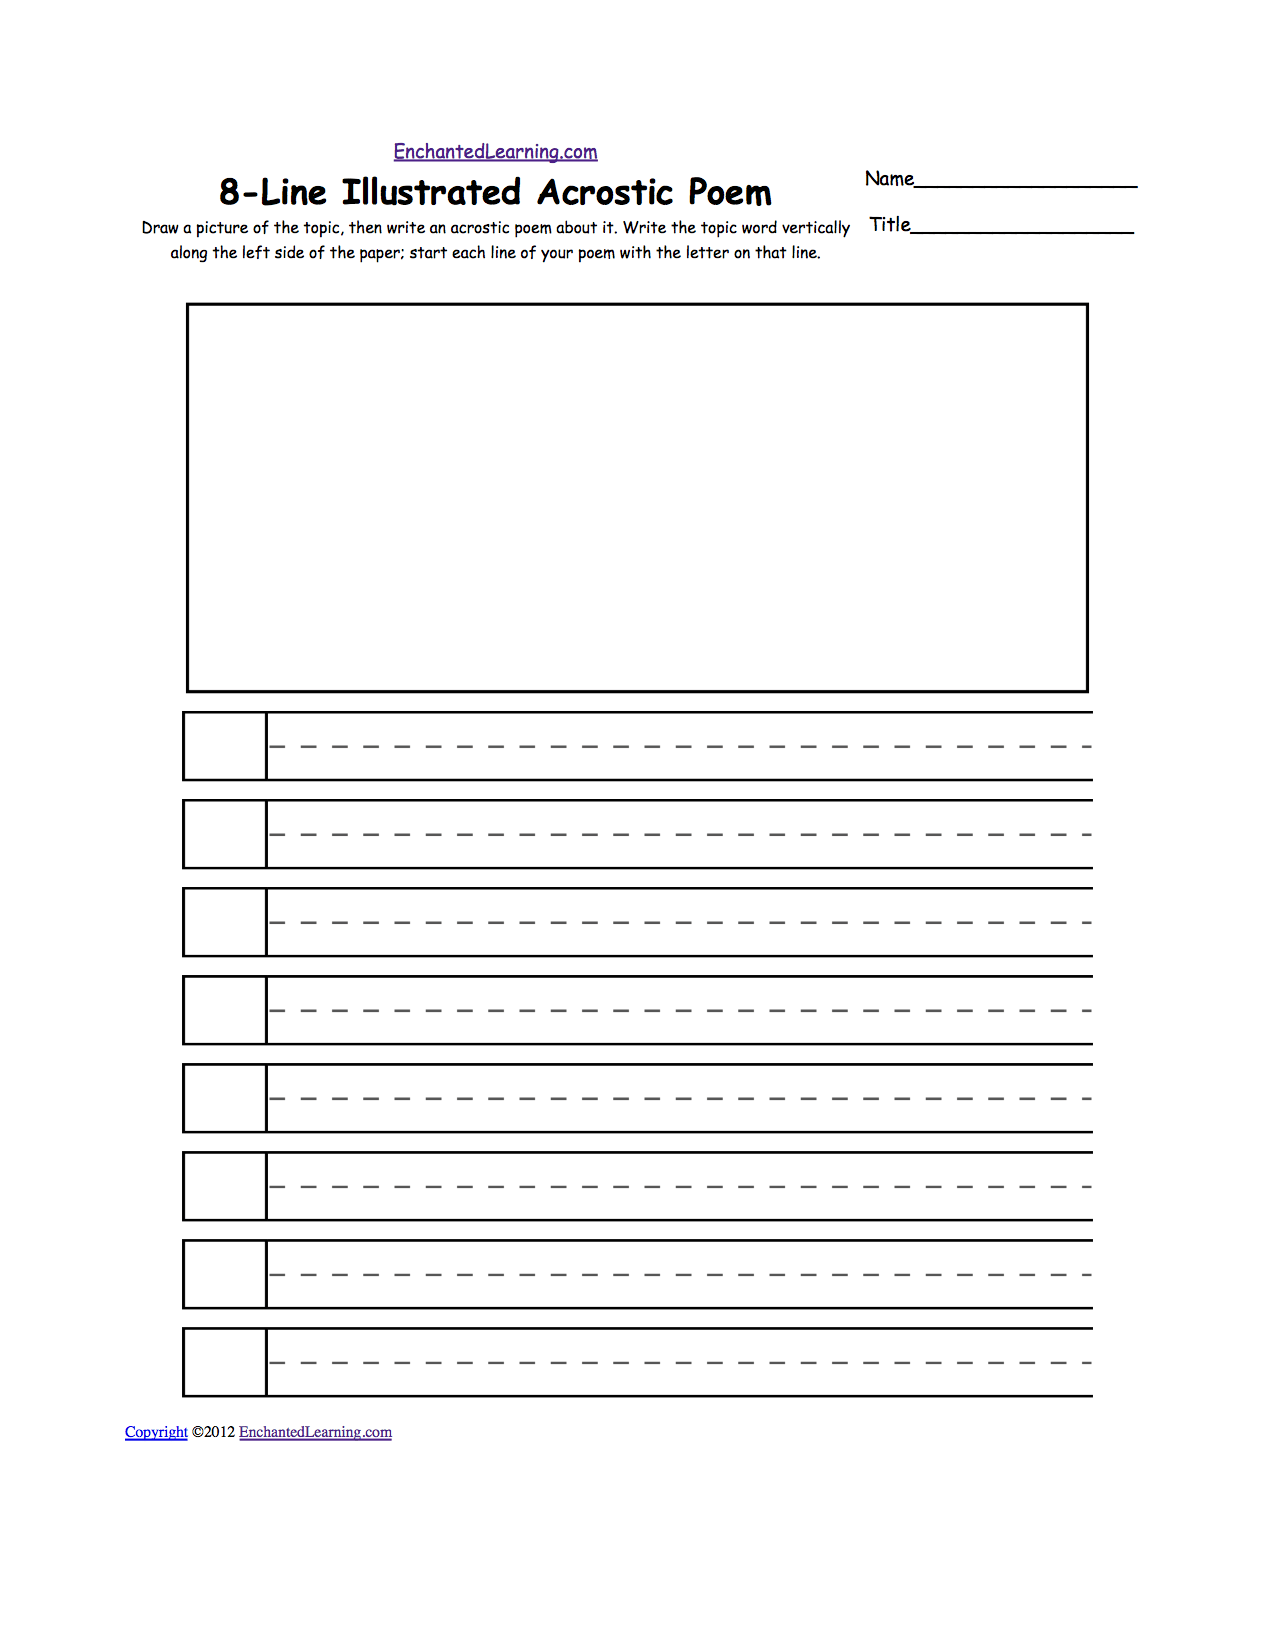 Blank Illustrated Acrostic Poem Worksheets Handwriting Lines Worksheet Printout